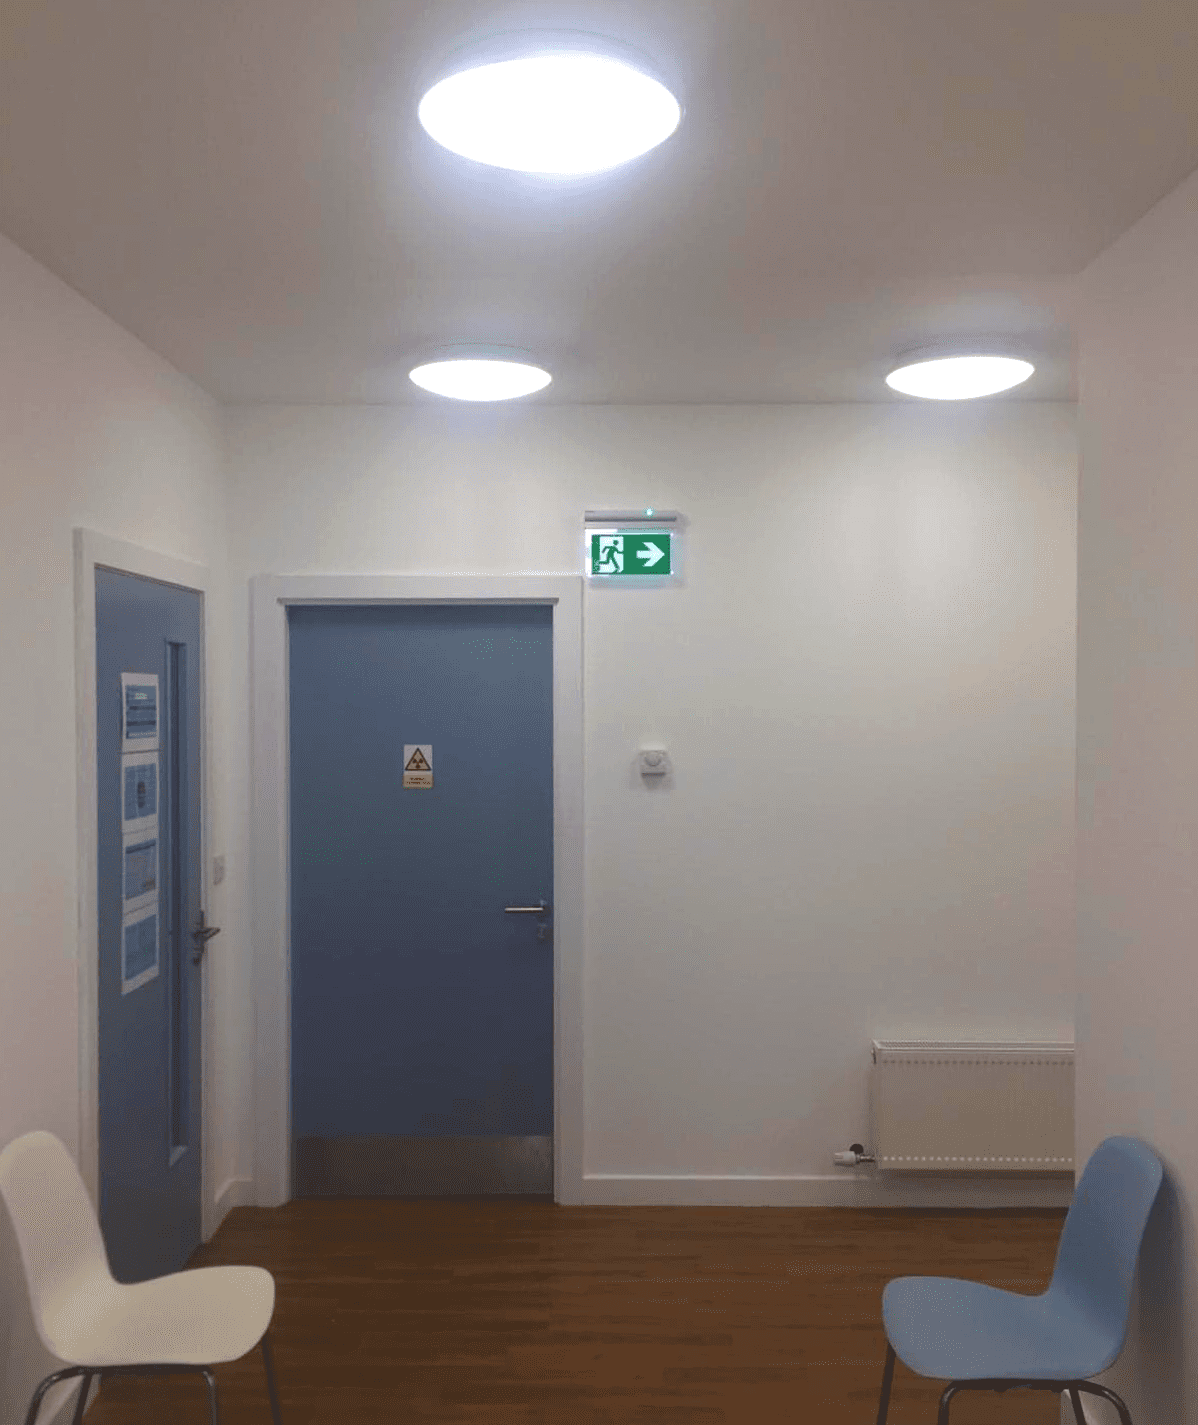 PAC Electrical Healthcare Commercial Project Emergency Lighting